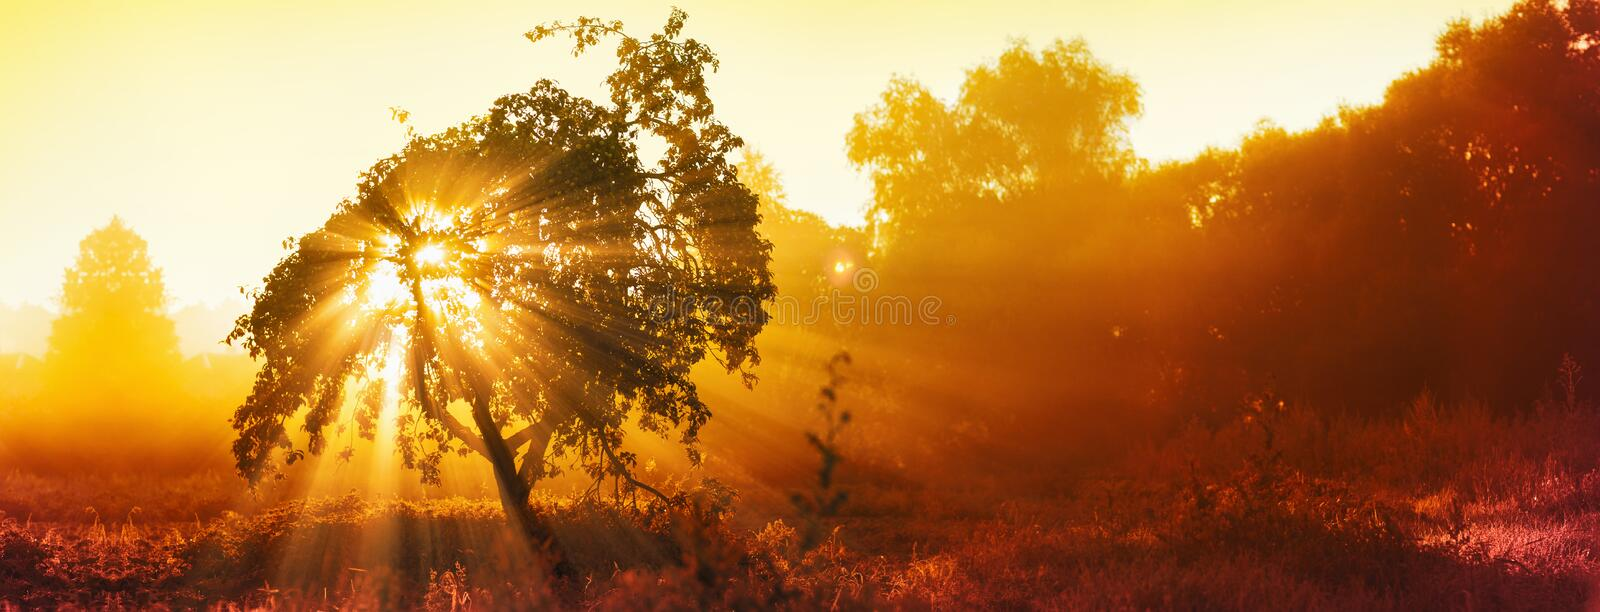 Magical Tree With Sun Rays In The Morning. Colorful Landscape With Foggy Forest, Gold Sunlight. Enchanted Tree. Summer Sunny royalty free stock photo